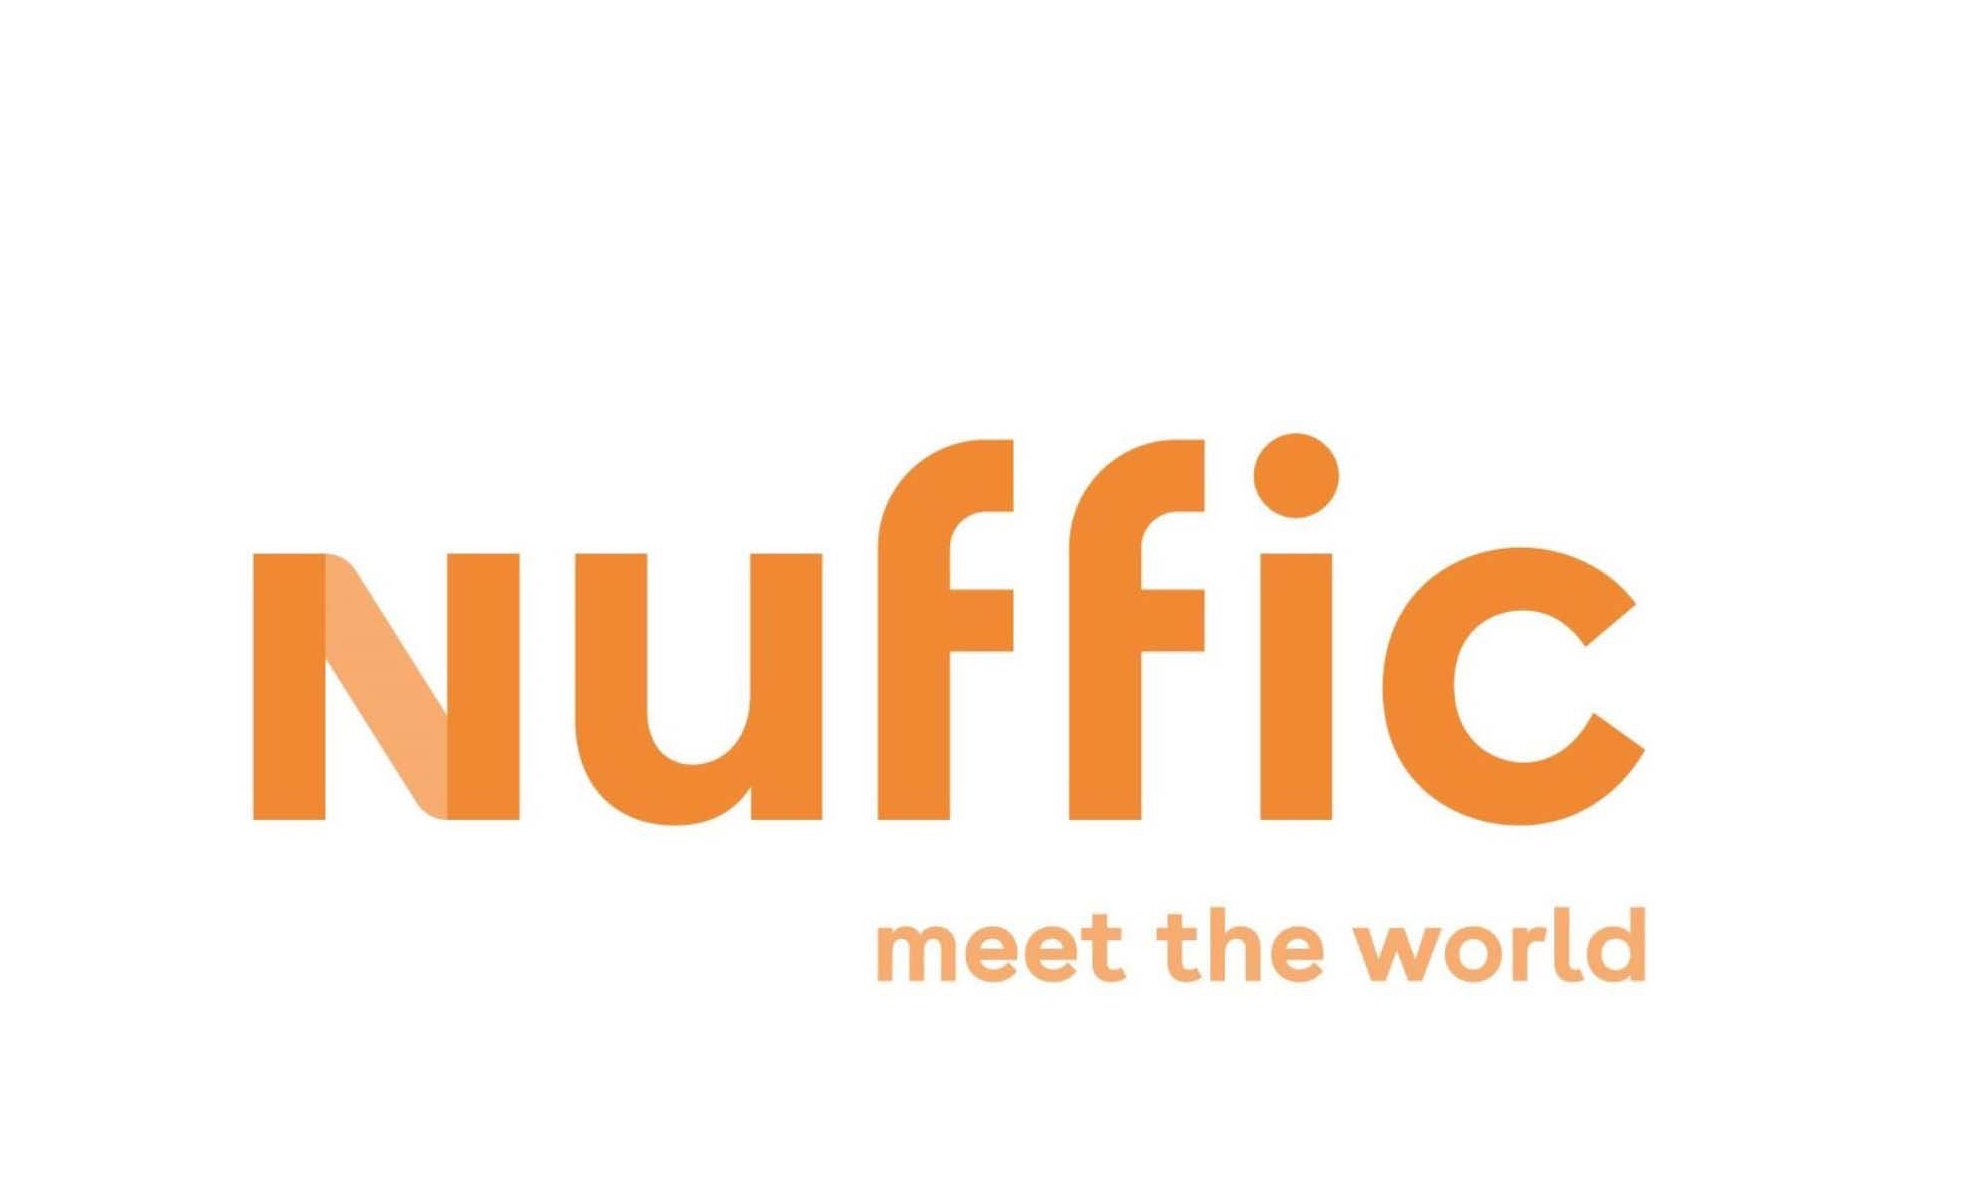 Nuffic Orange Understanding Program (OKP) Scholarships 2019 for Brief Courses and Masters in The Netherlands